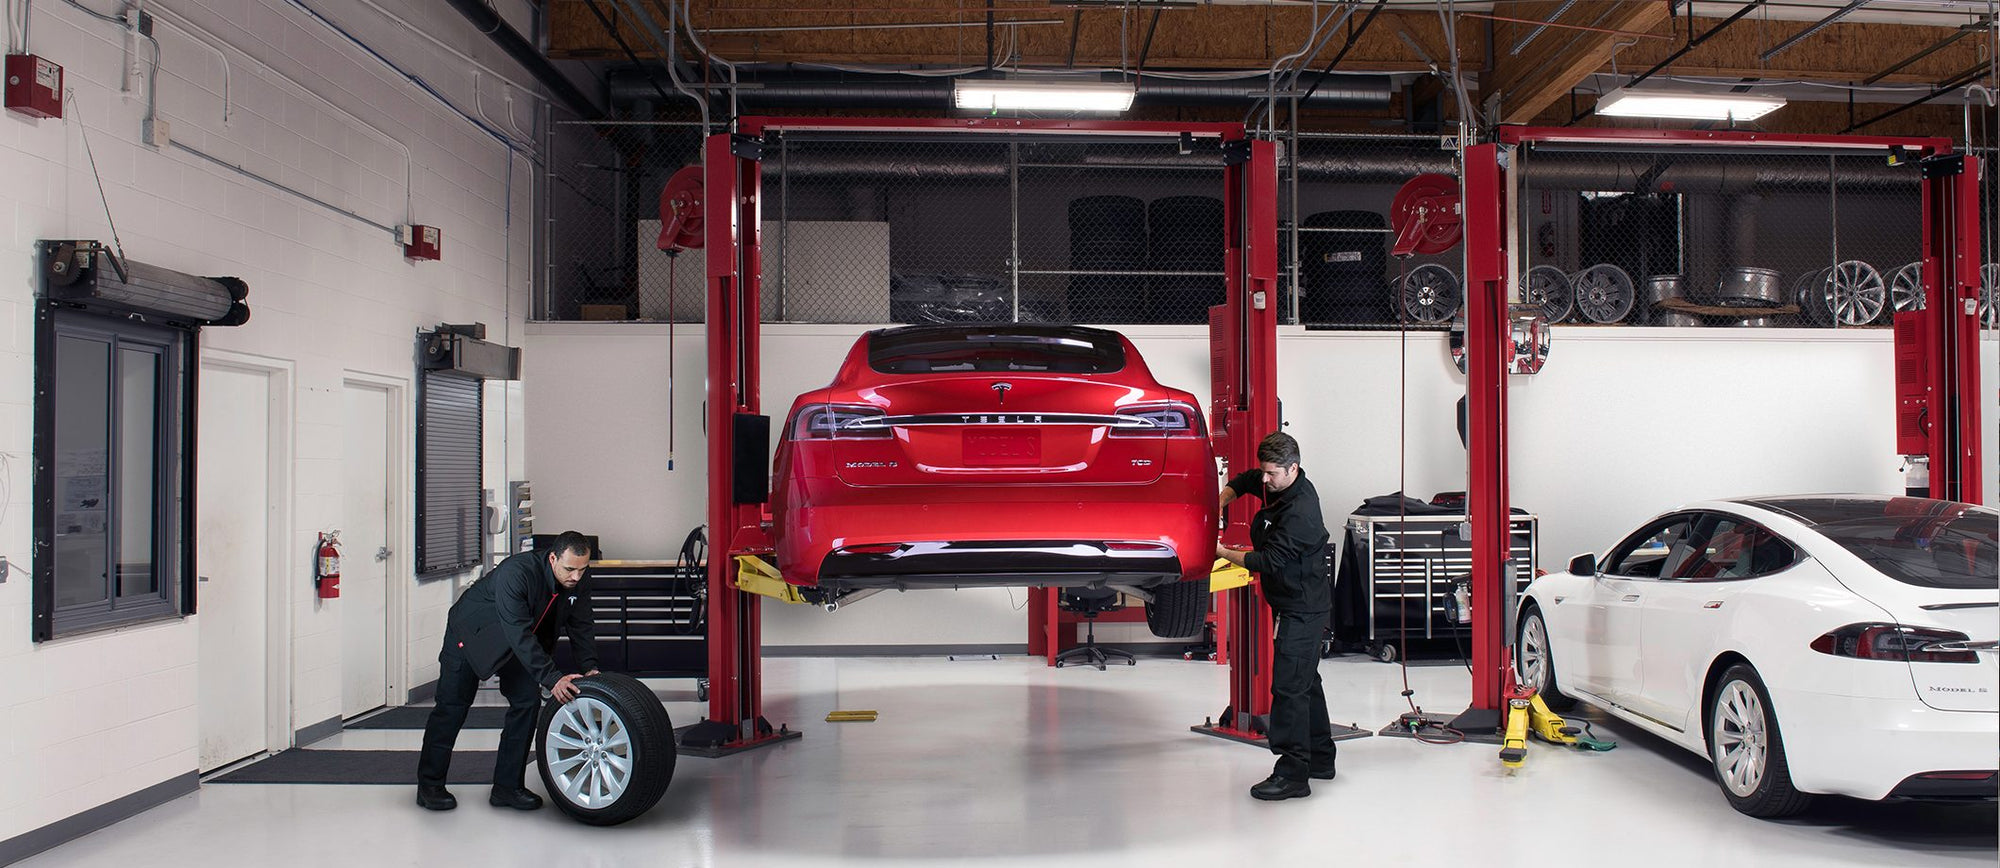 Independent Repairers in Europe Can Now Become an Official Tesla Approved Body Shop